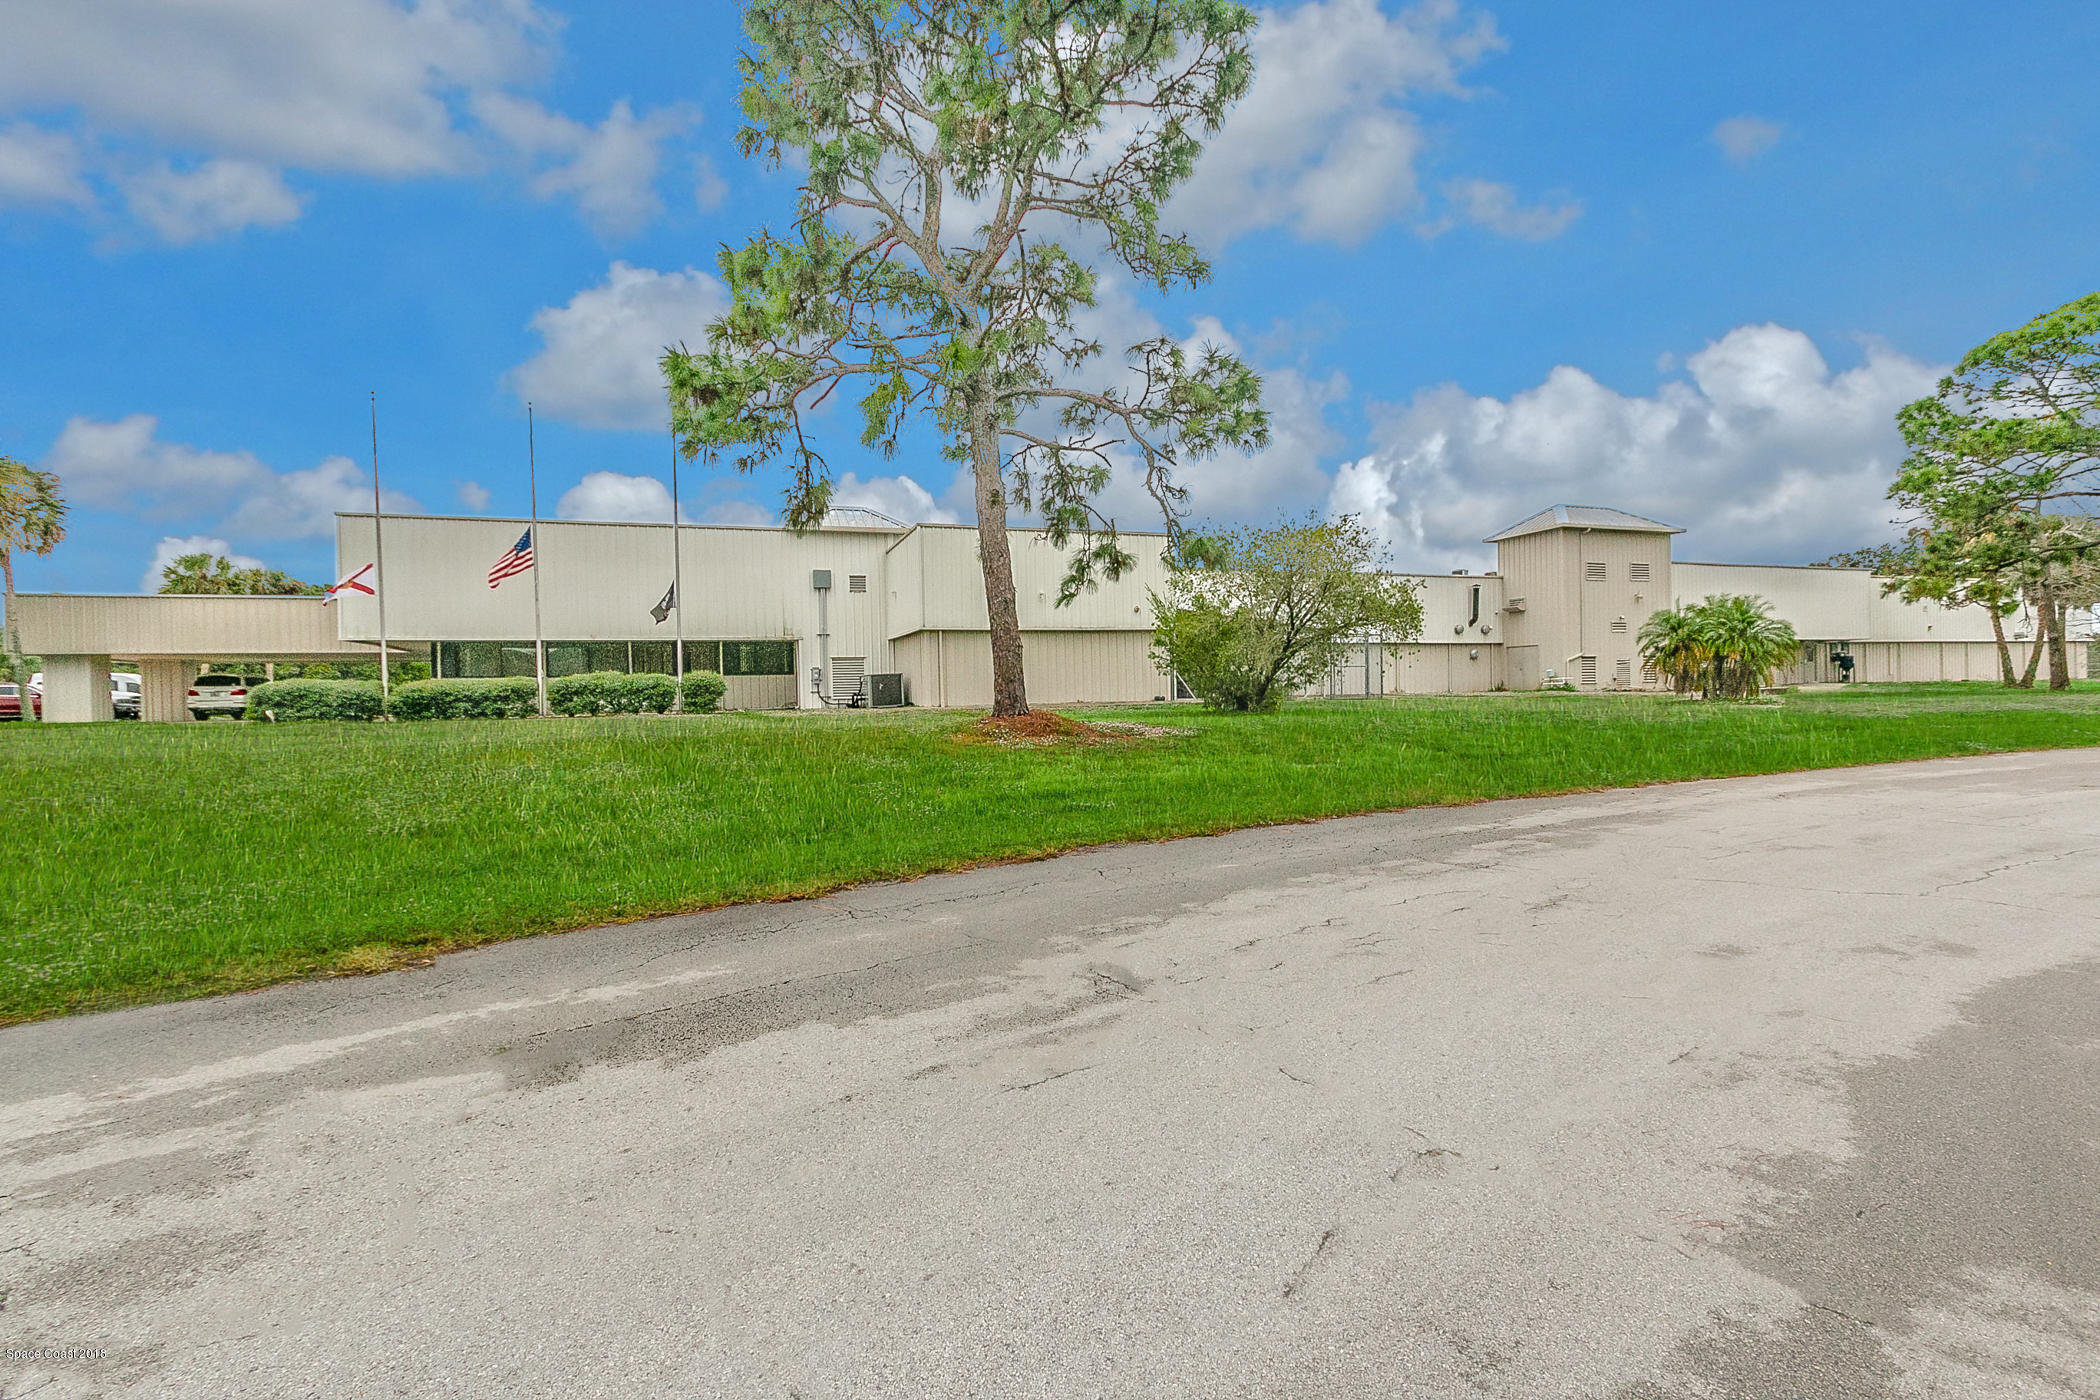 Commercial for Sale at 2144 NE Franklin Drive 2144 NE Franklin Drive Palm Bay, Florida 32905 United States